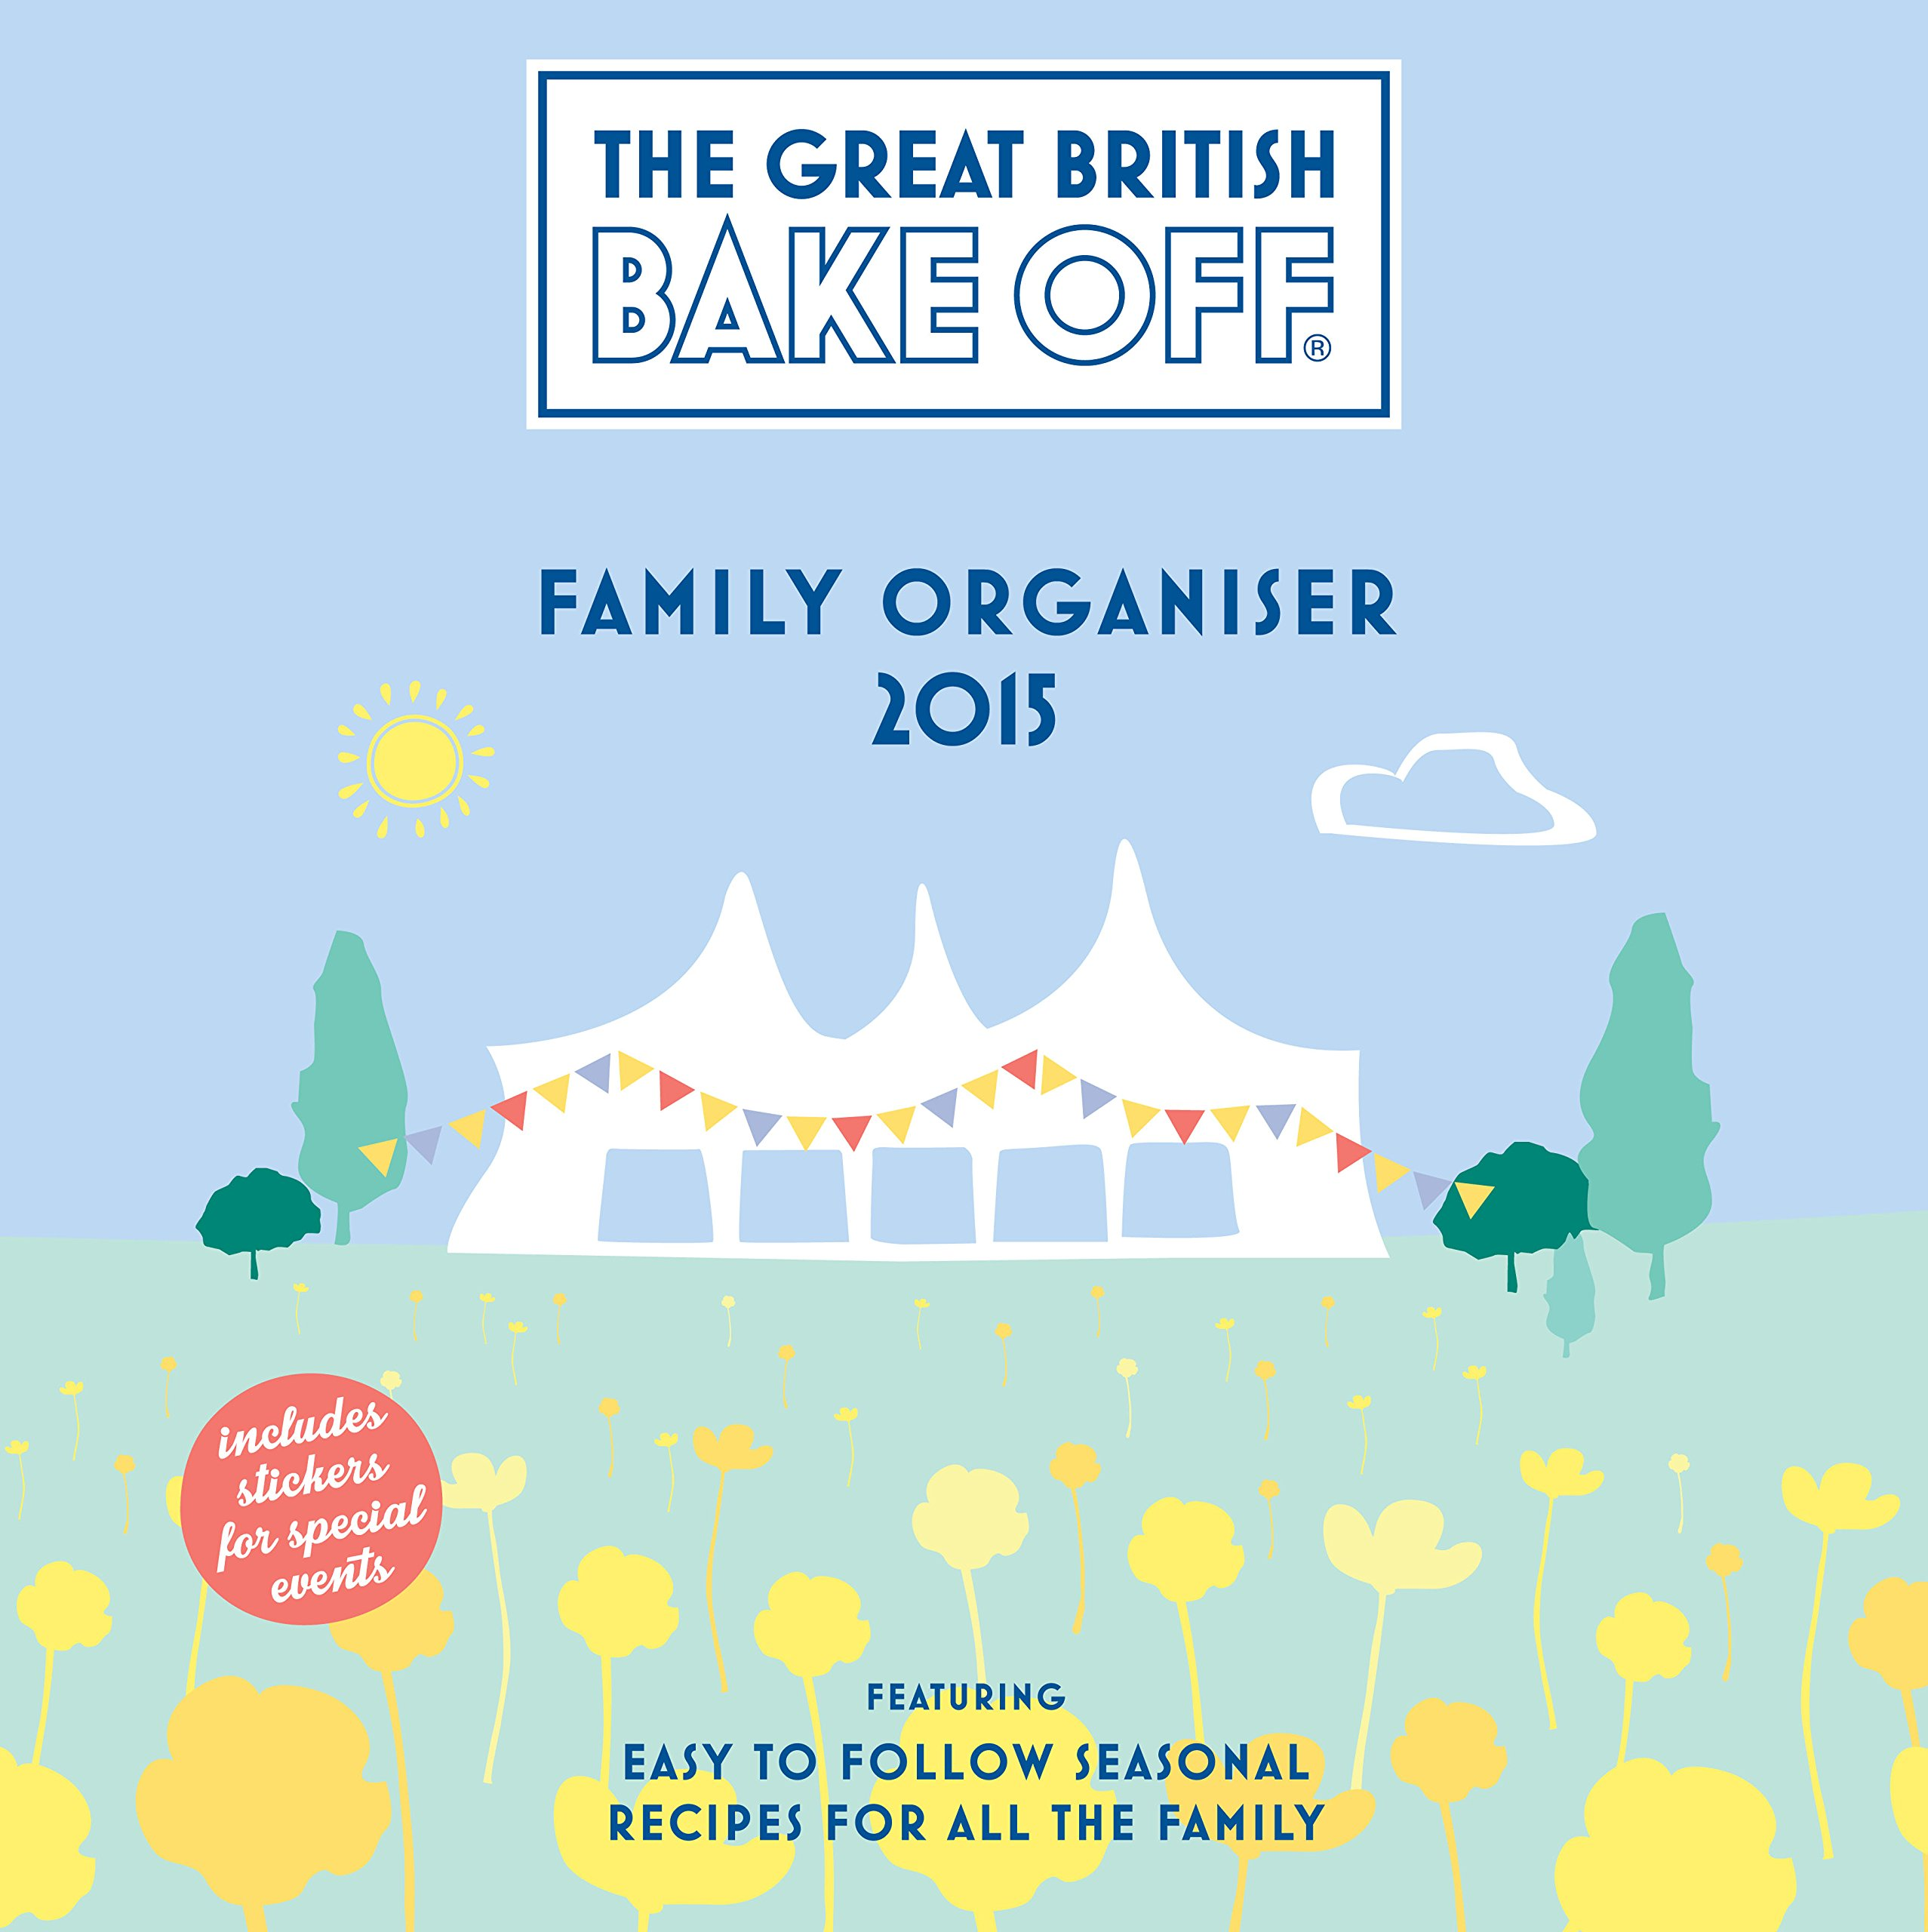 official great british bake off family organiser 2015 wall calendar calendars 2015 amazoncouk danilo books